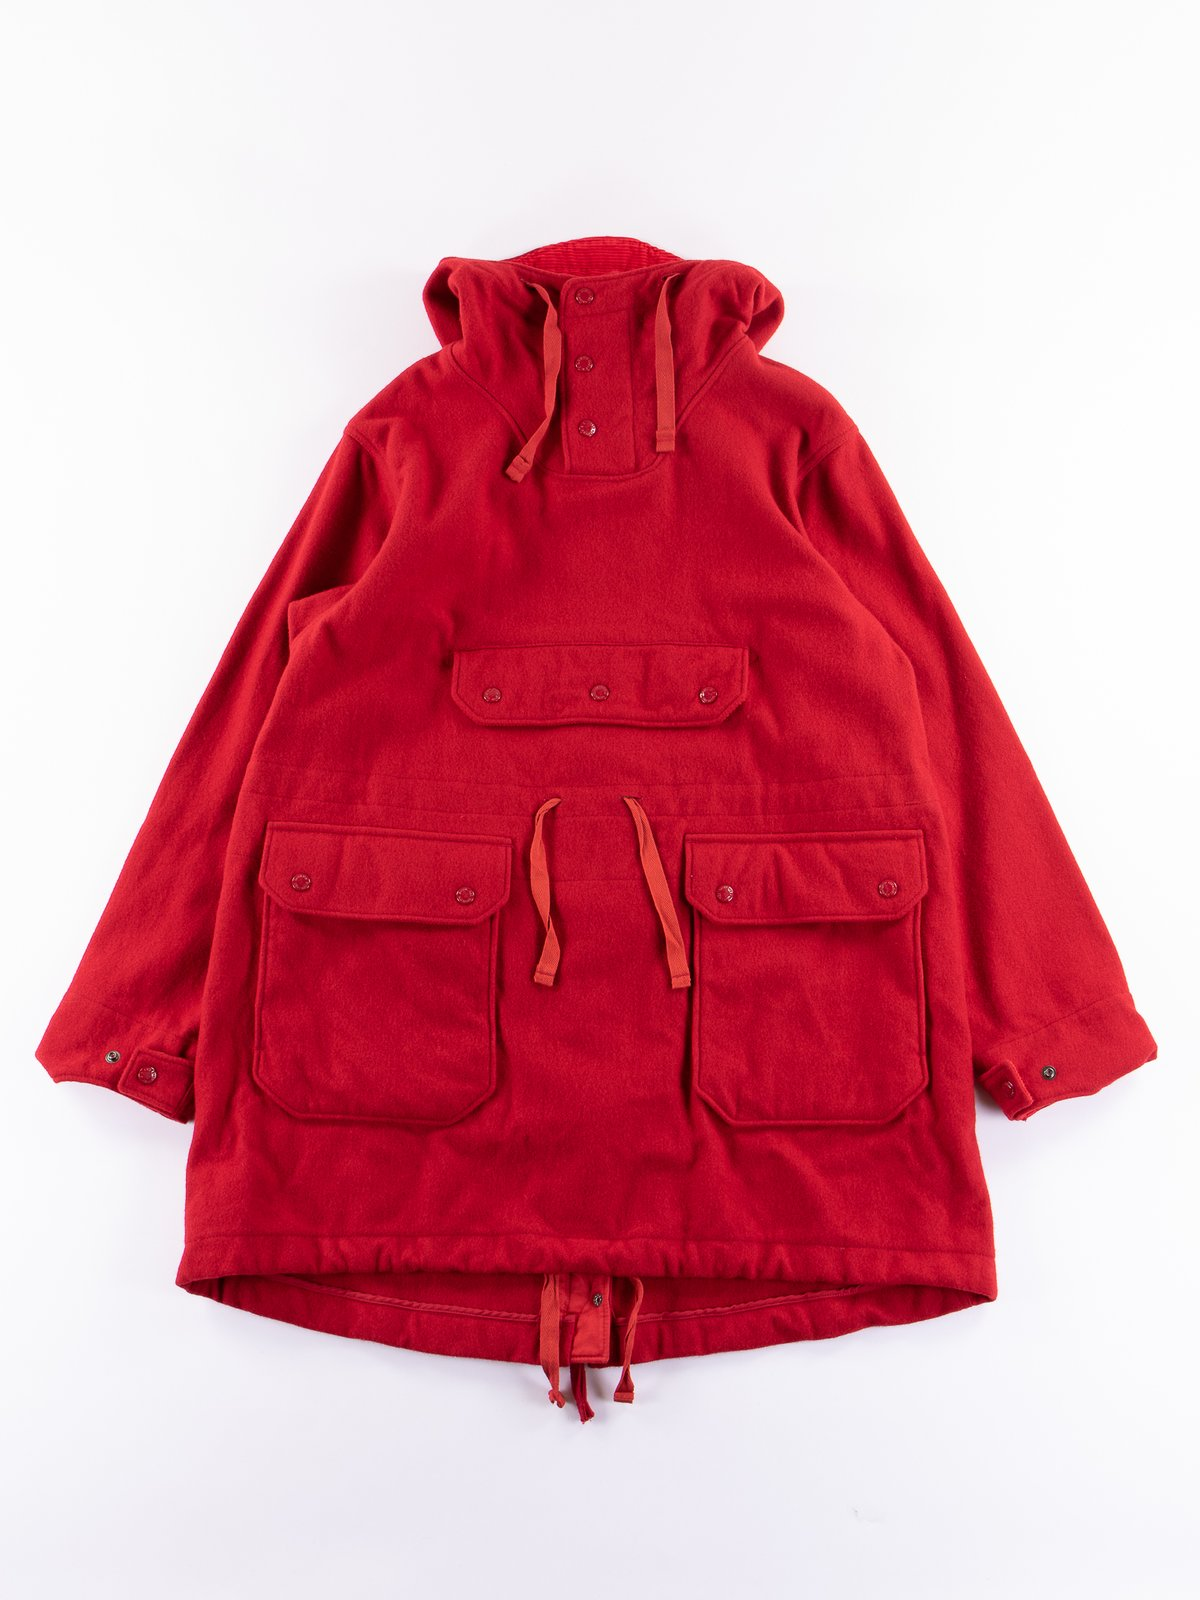 Red Wool Melton Over Parka - Image 1